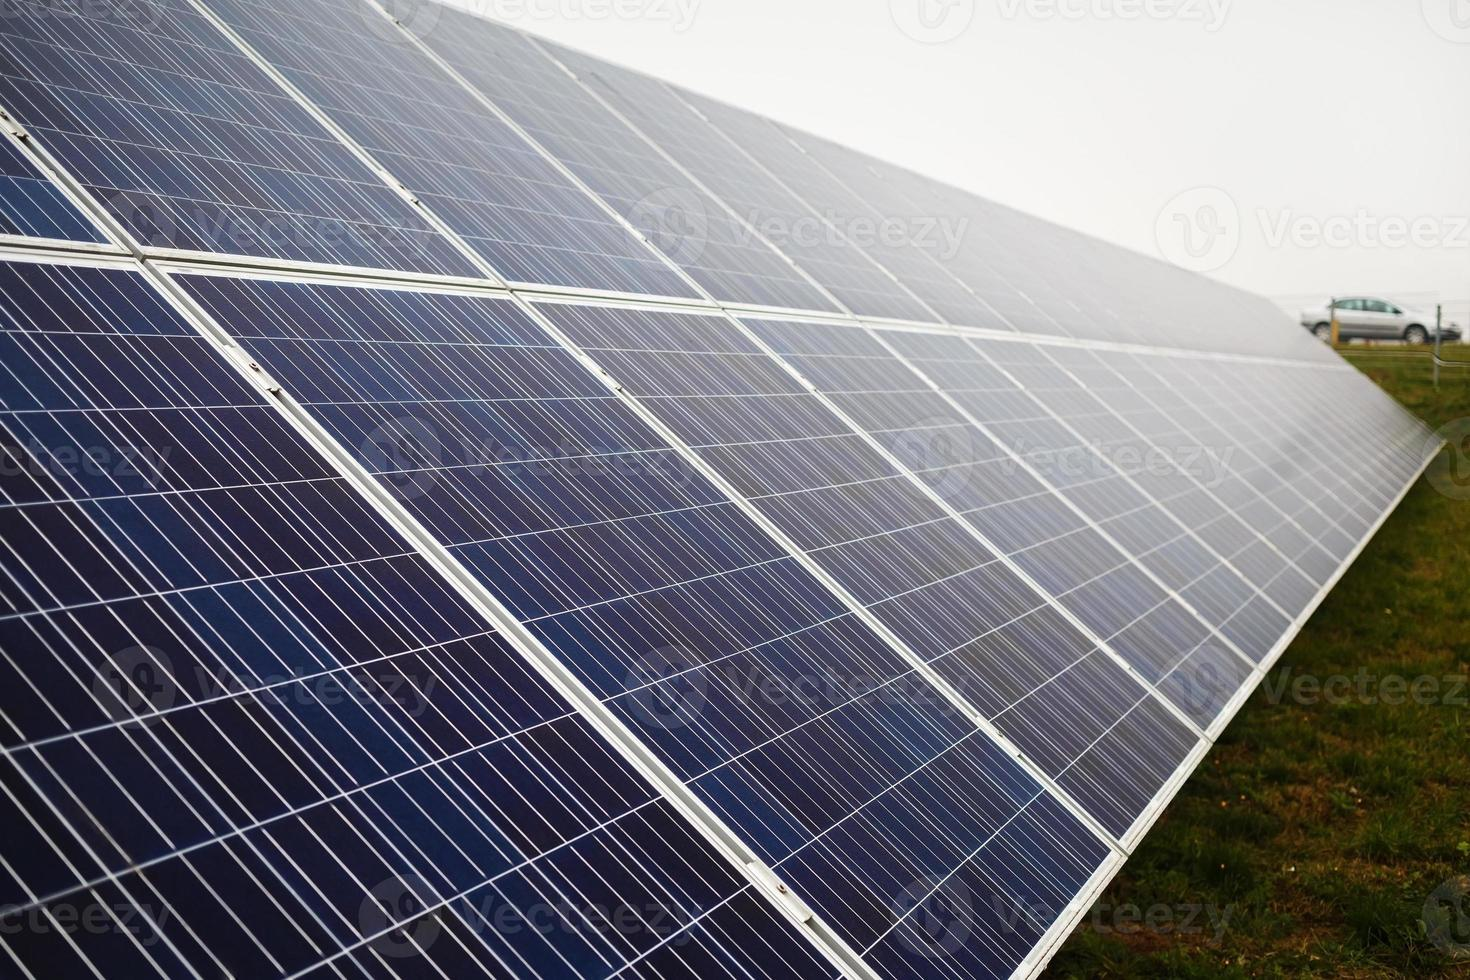 Photovoltaic solar farm photo